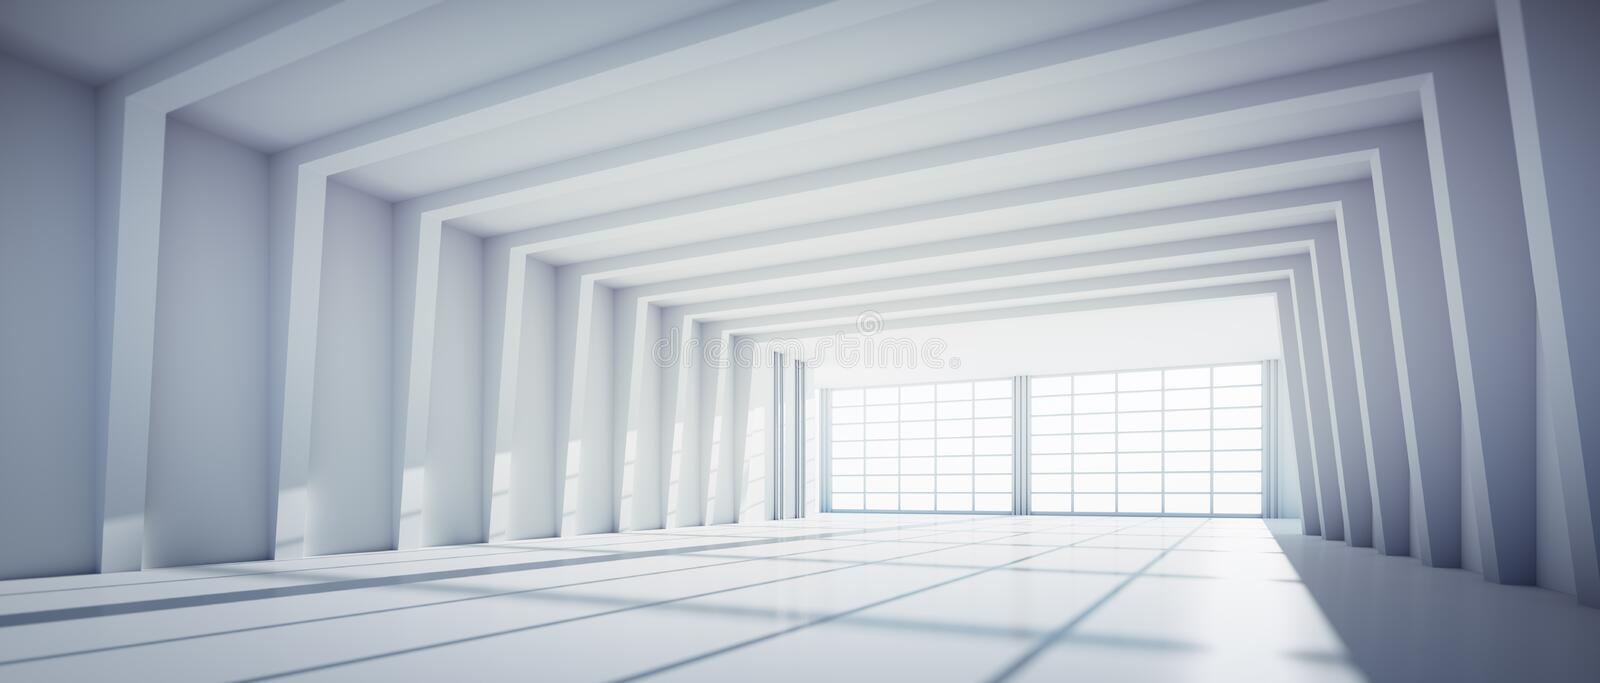 Empty large white industrial warehouse. In a factory with big windows - sunlight on the floor stock illustration